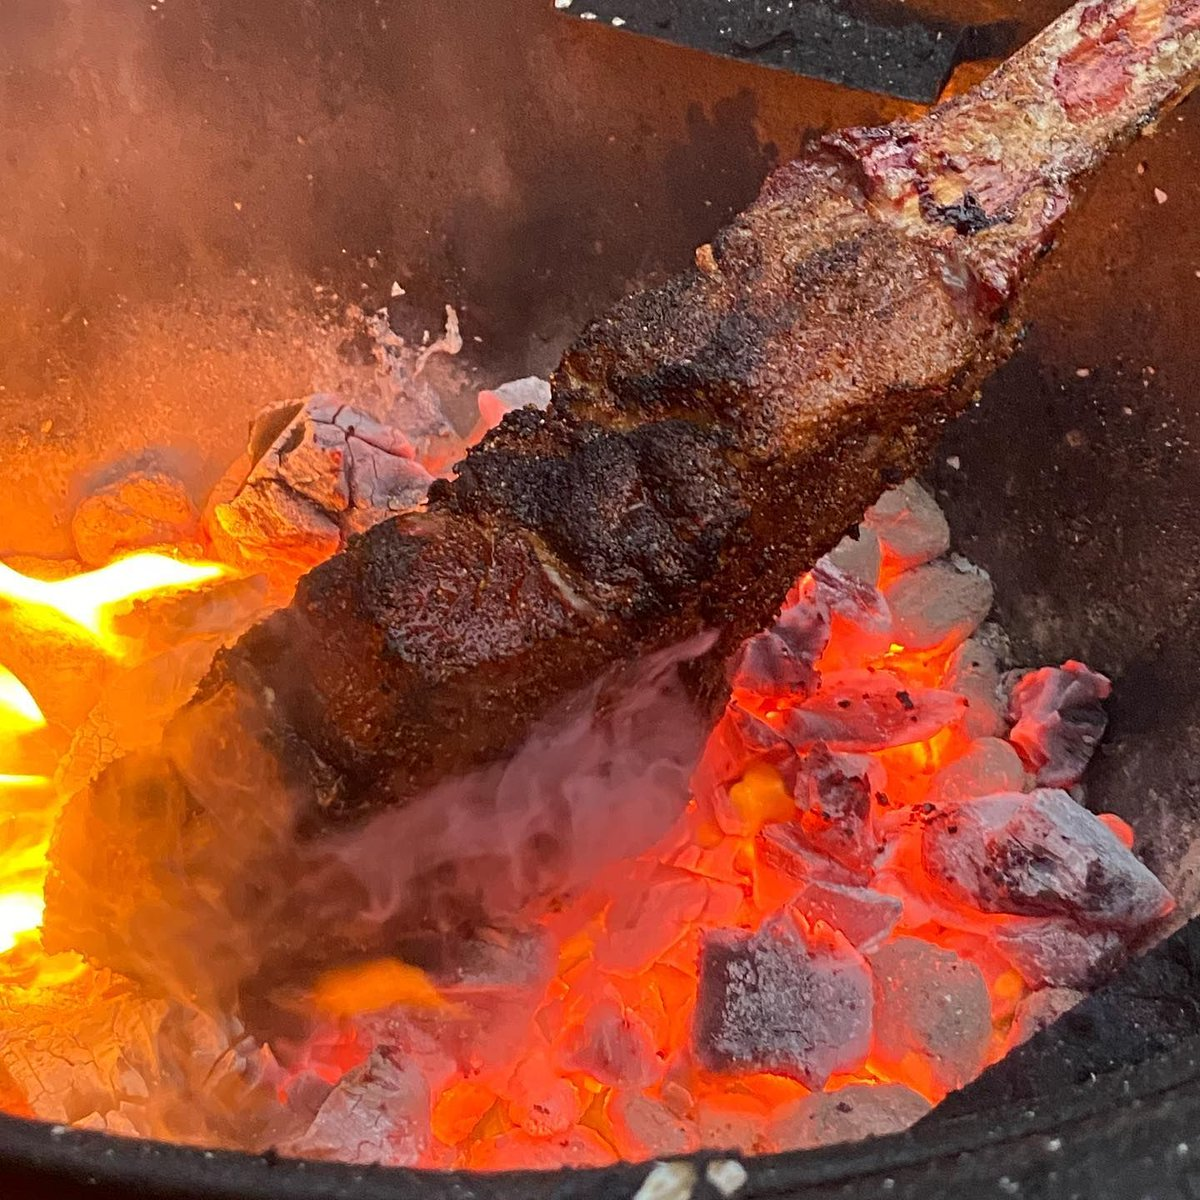 Getting a good sear on a steak is crucial. What's the best way to build a crust: caveman style or our cast iron grill grates?  📷 by @brews_and_ques: Ended up catching my charcoal chimney on fire so in crunch time I had to dump and go Caveman style!!🤘🏼   #chargriller #steak https://t.co/MzqNBA7Bbd